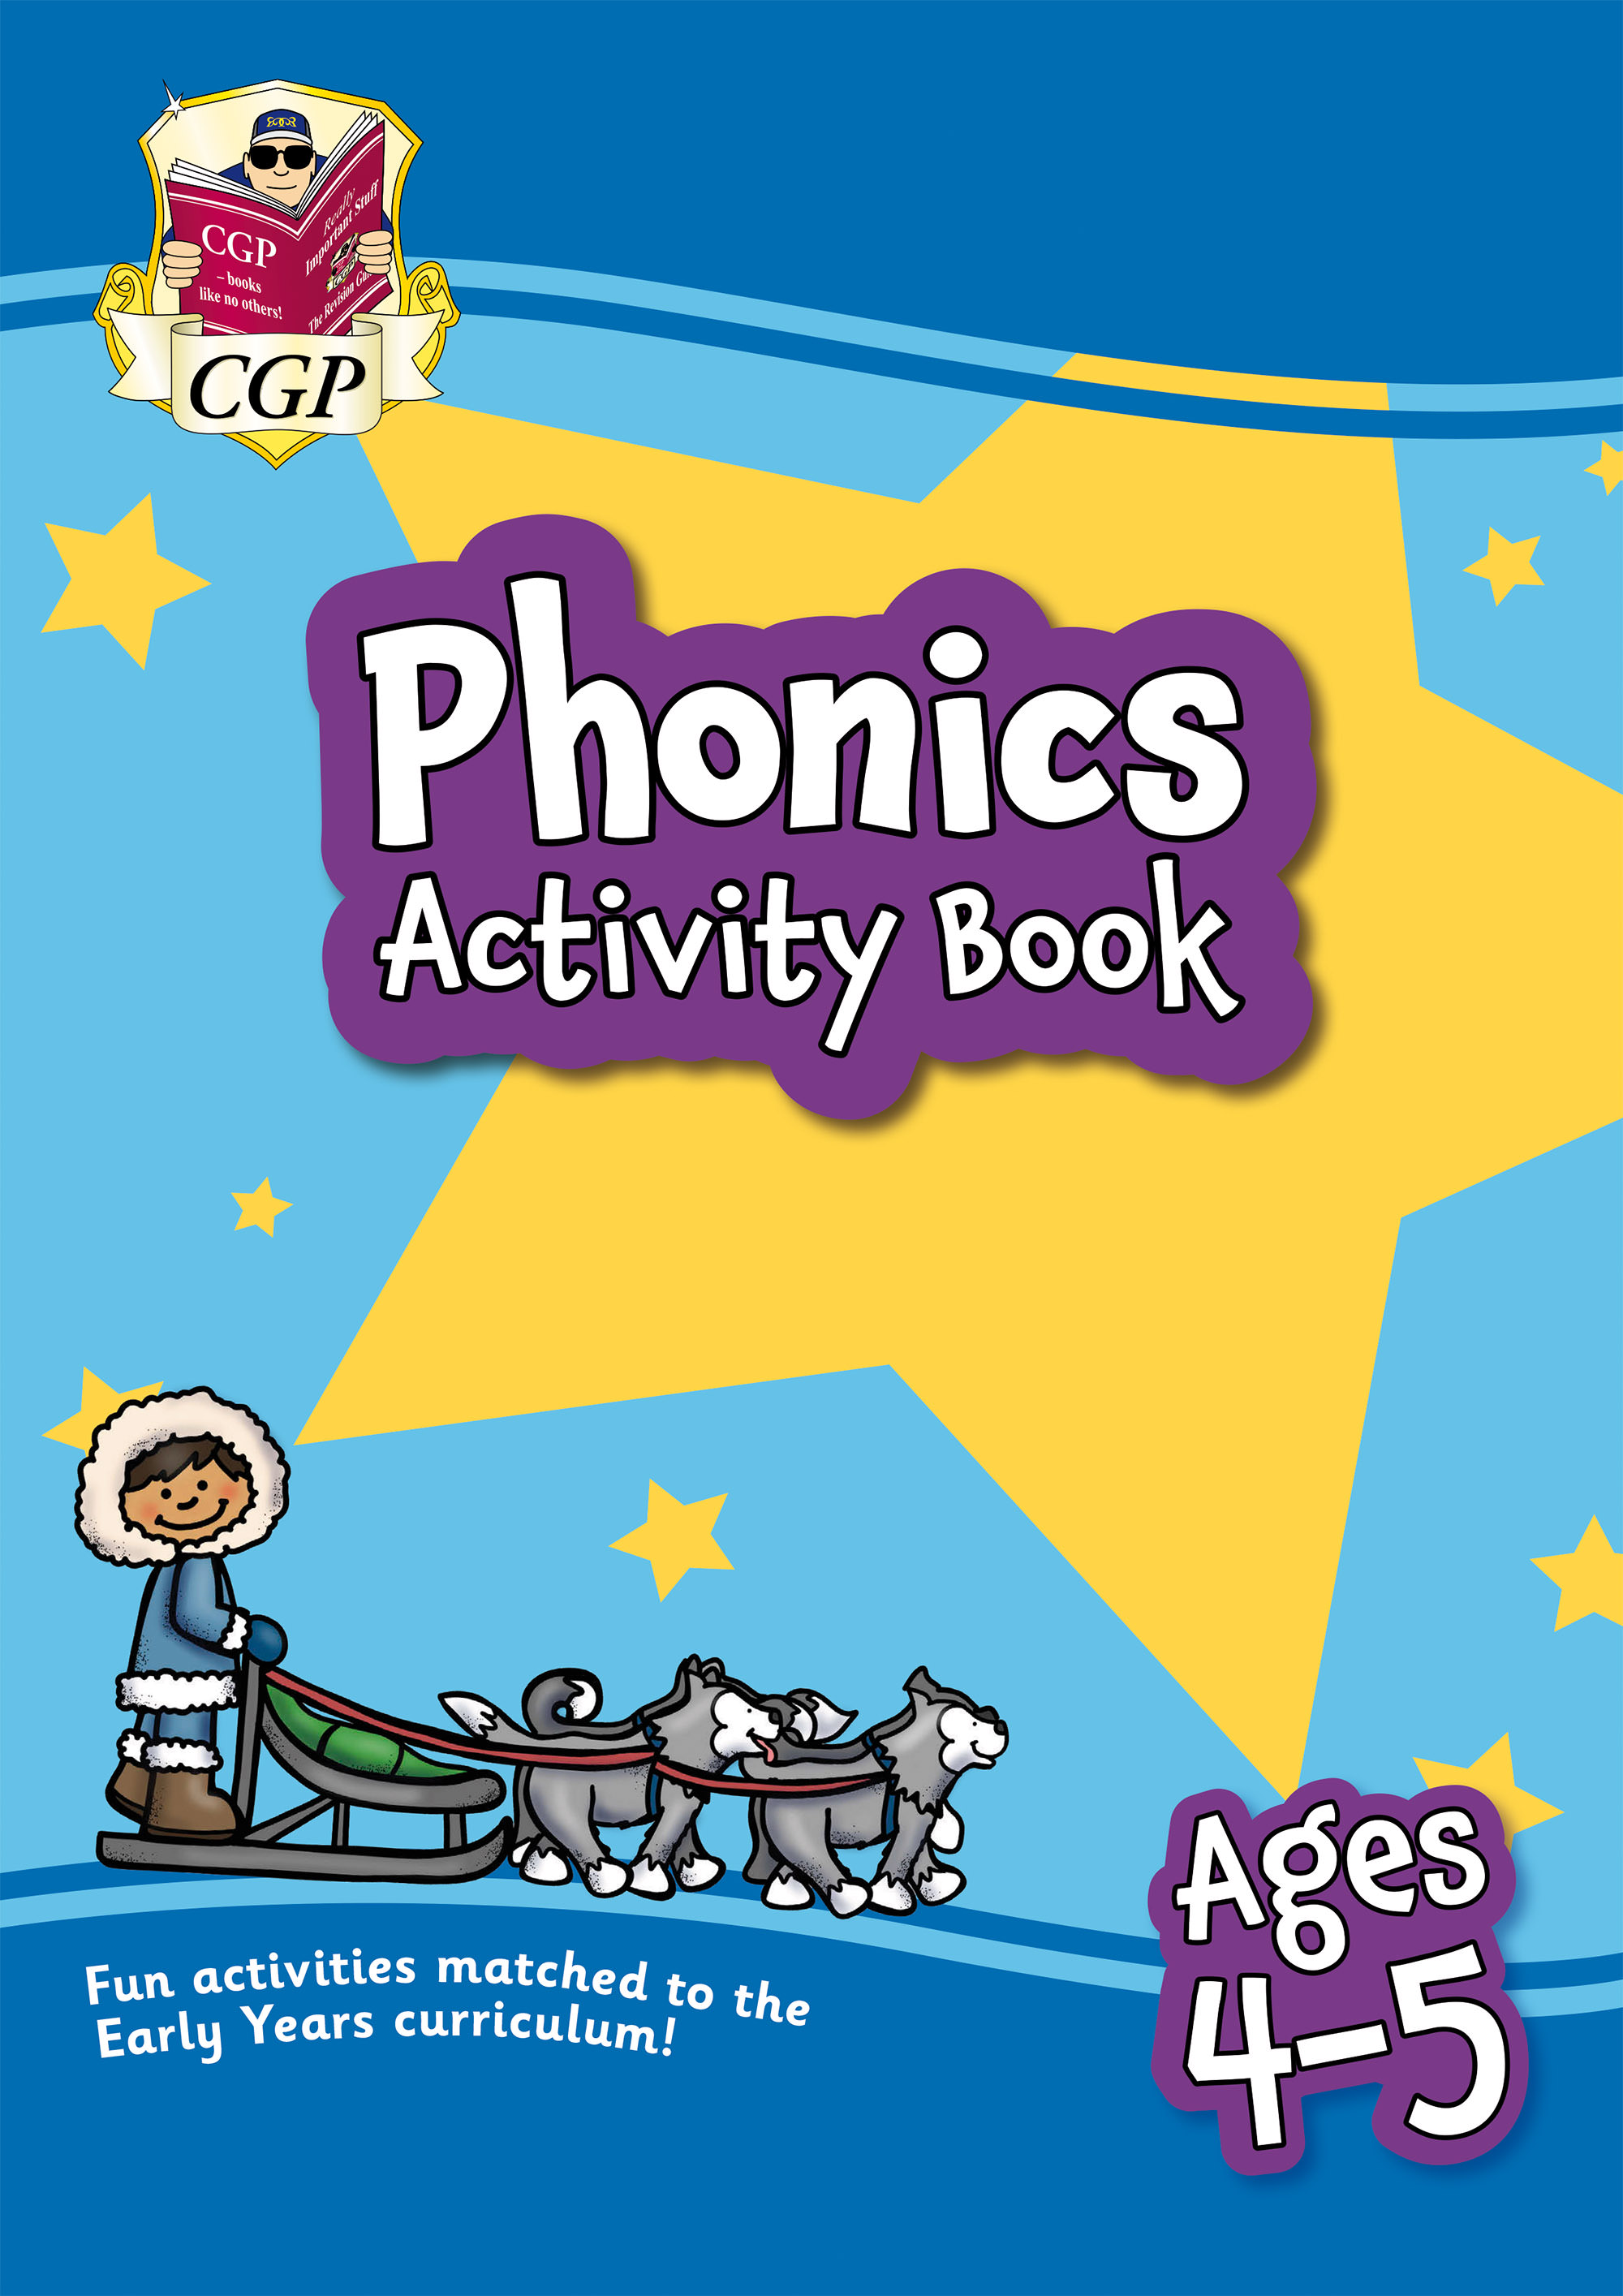 EPFROQ01DK - New Phonics Activity Book for Ages 4-5: Perfect for Catch-Up and Home Learning